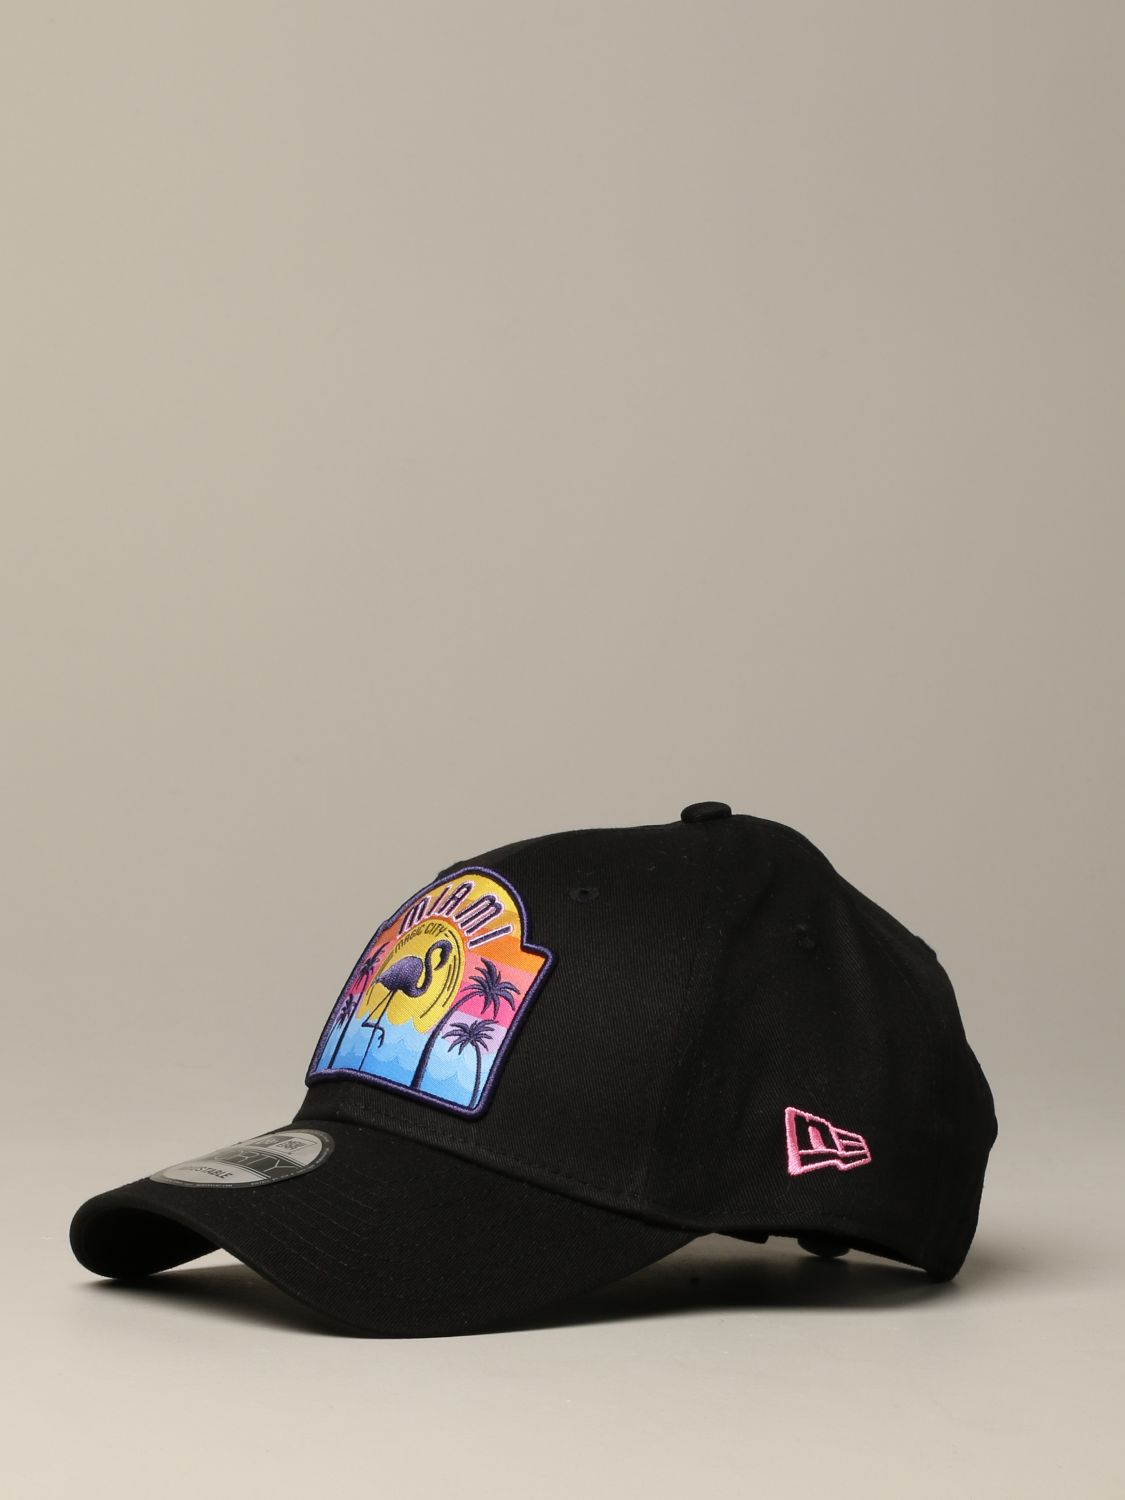 New Era Miami 9forty Adjustable cap USA Patch